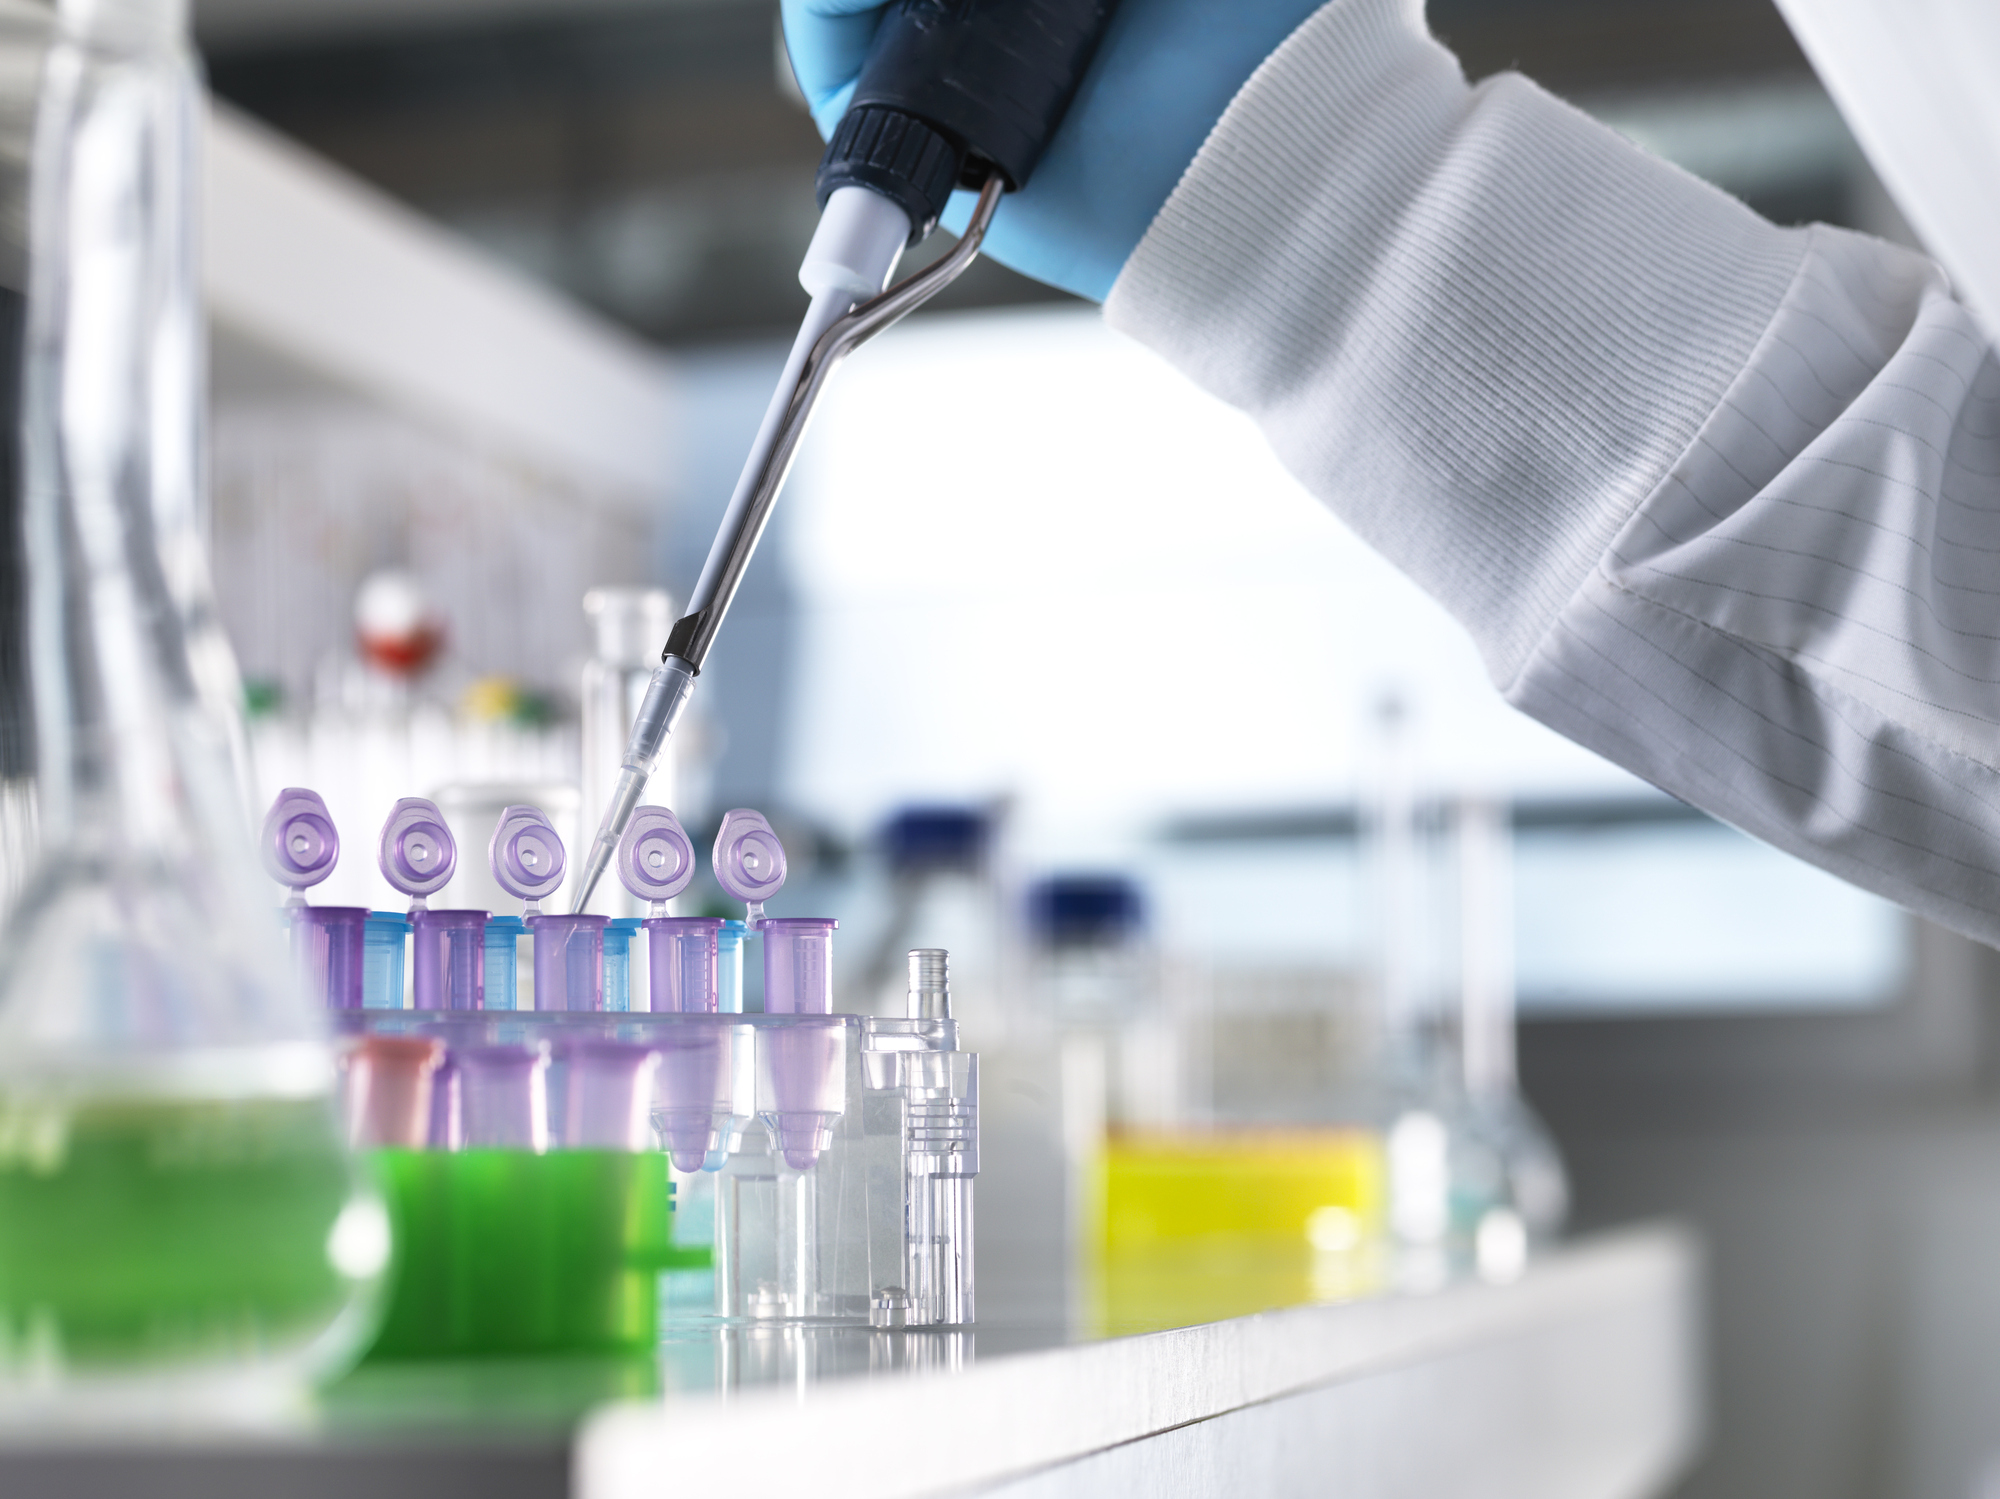 Scientist pipetting a sample into a vial for analytical testing in a chemistry laboratory.